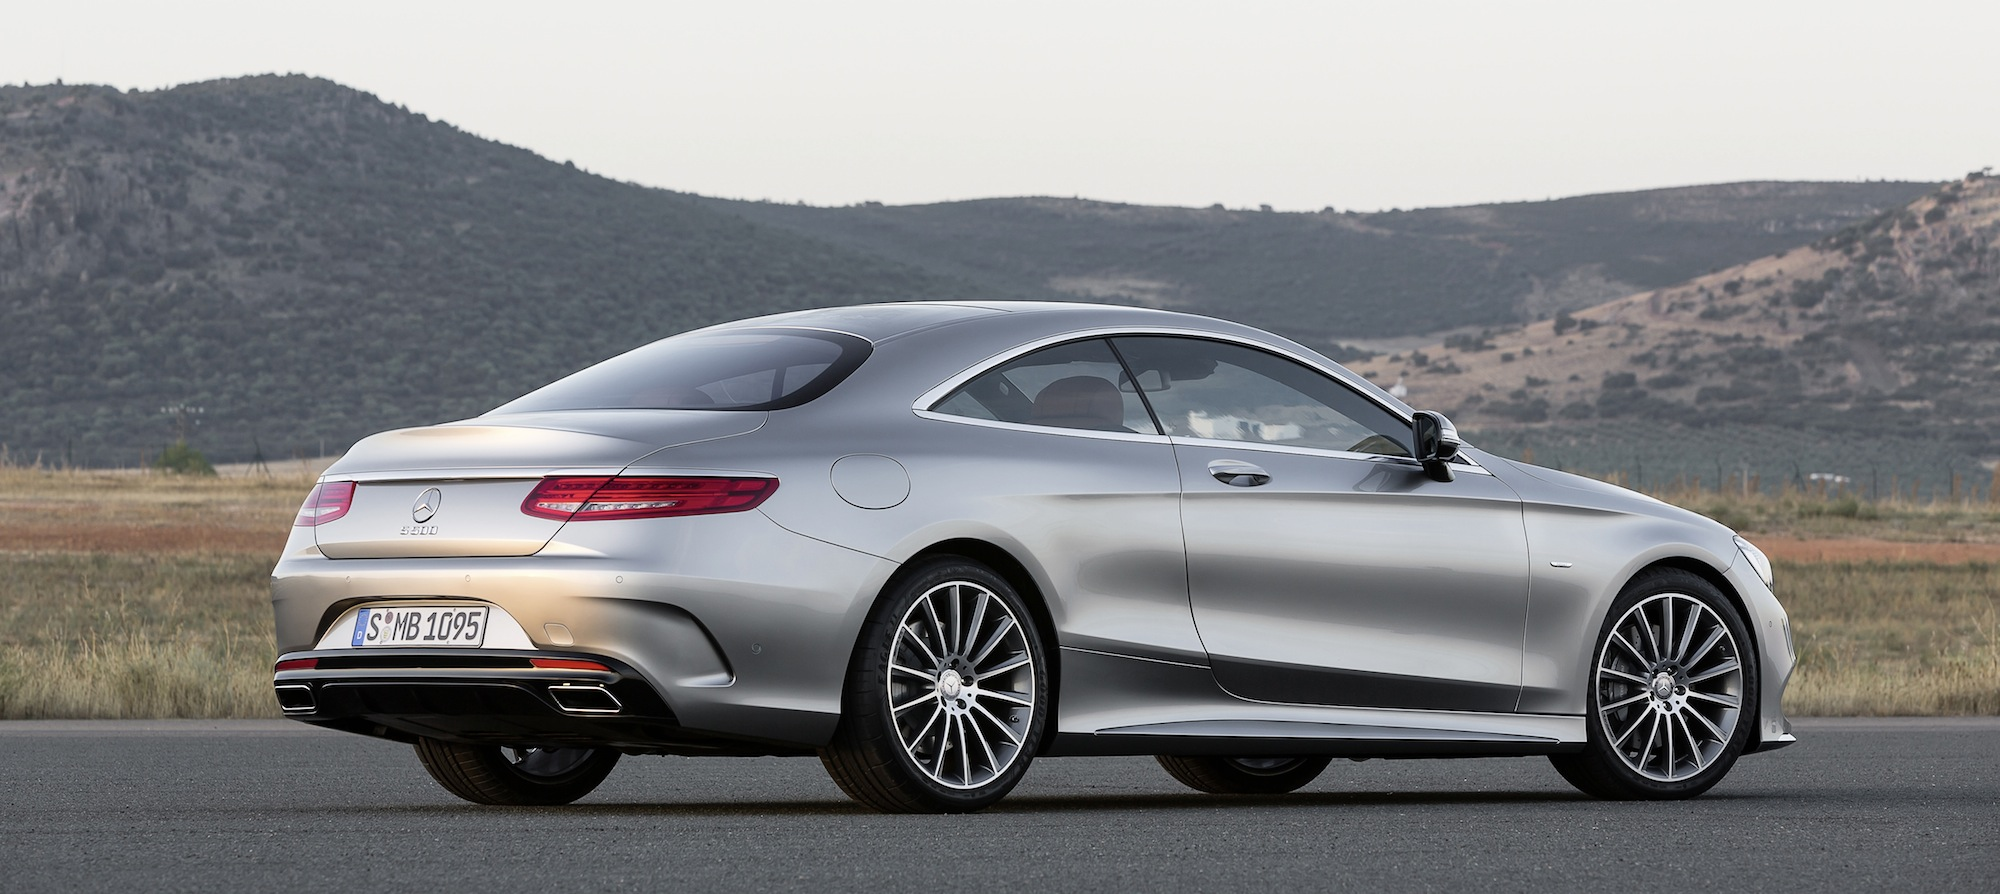 Mercedes benz s class coupe revealed photos caradvice for 2014 mercedes benz s class sedan